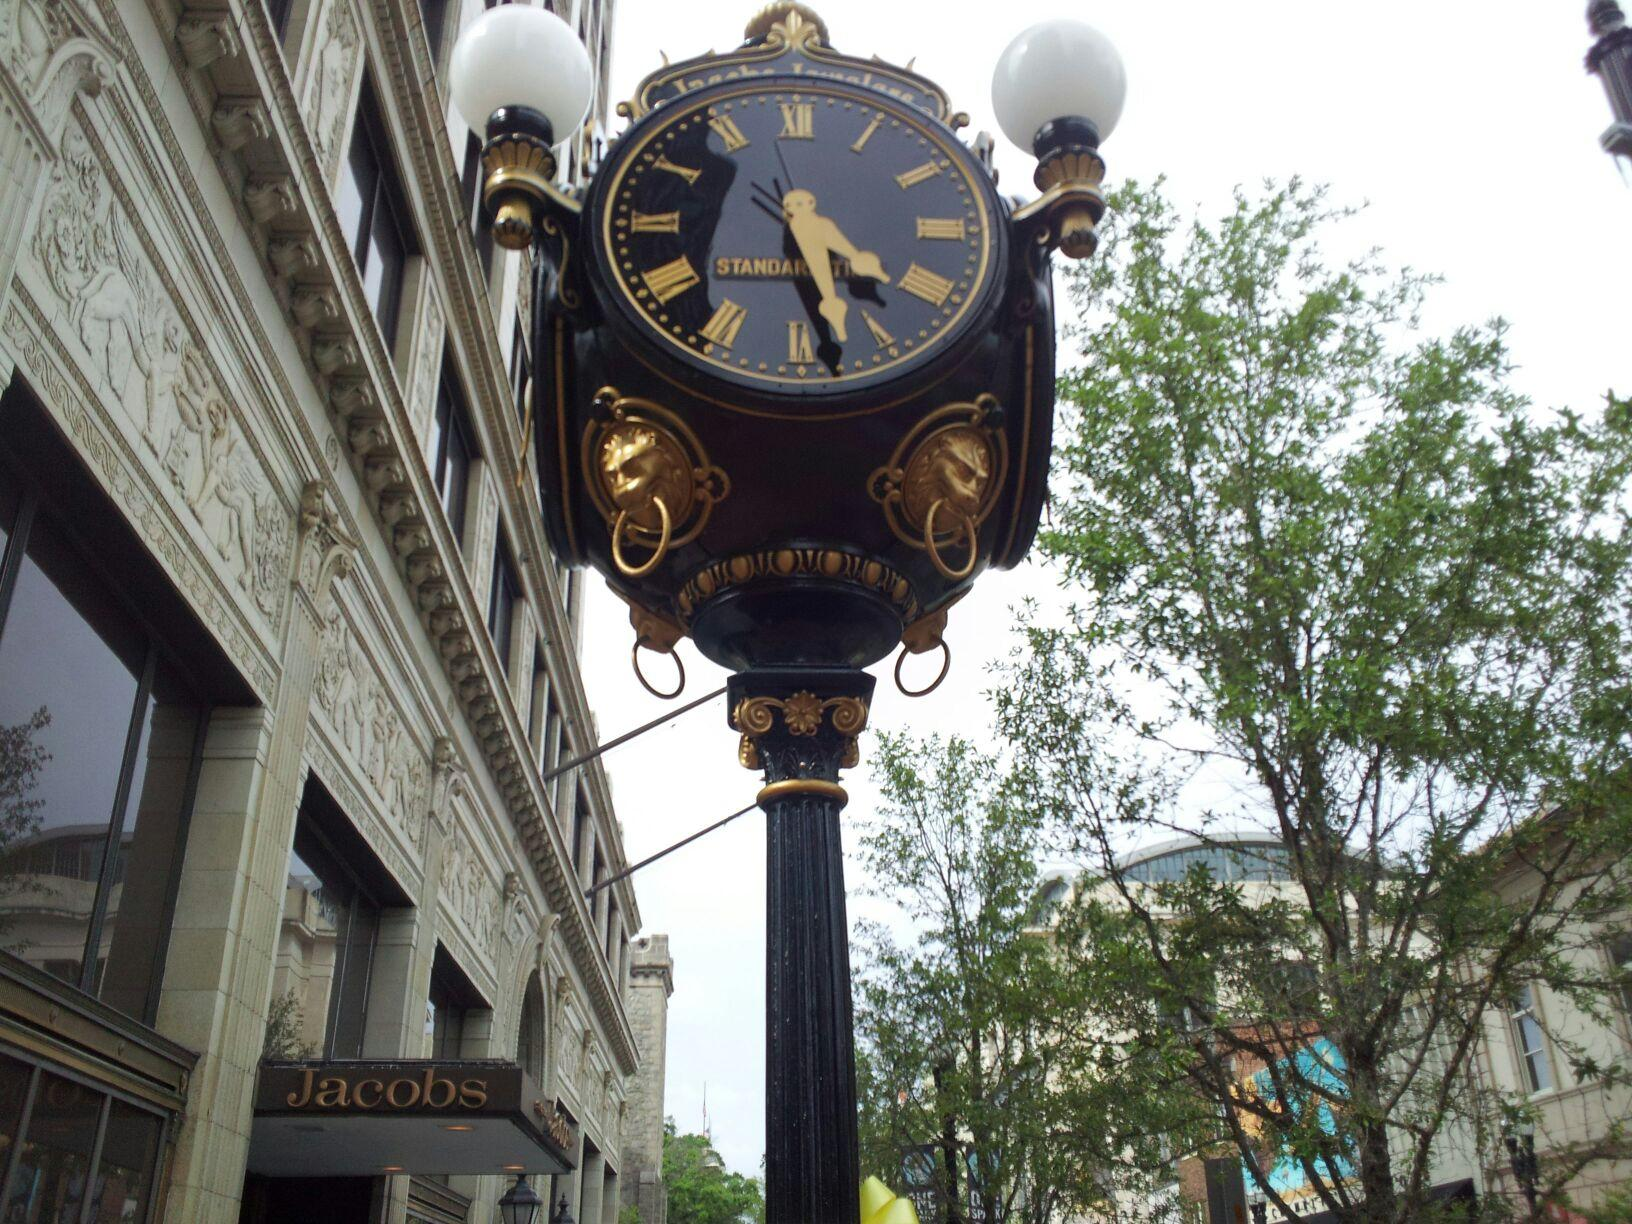 jacobs jewelers clock returns to downtown wjct news. Black Bedroom Furniture Sets. Home Design Ideas